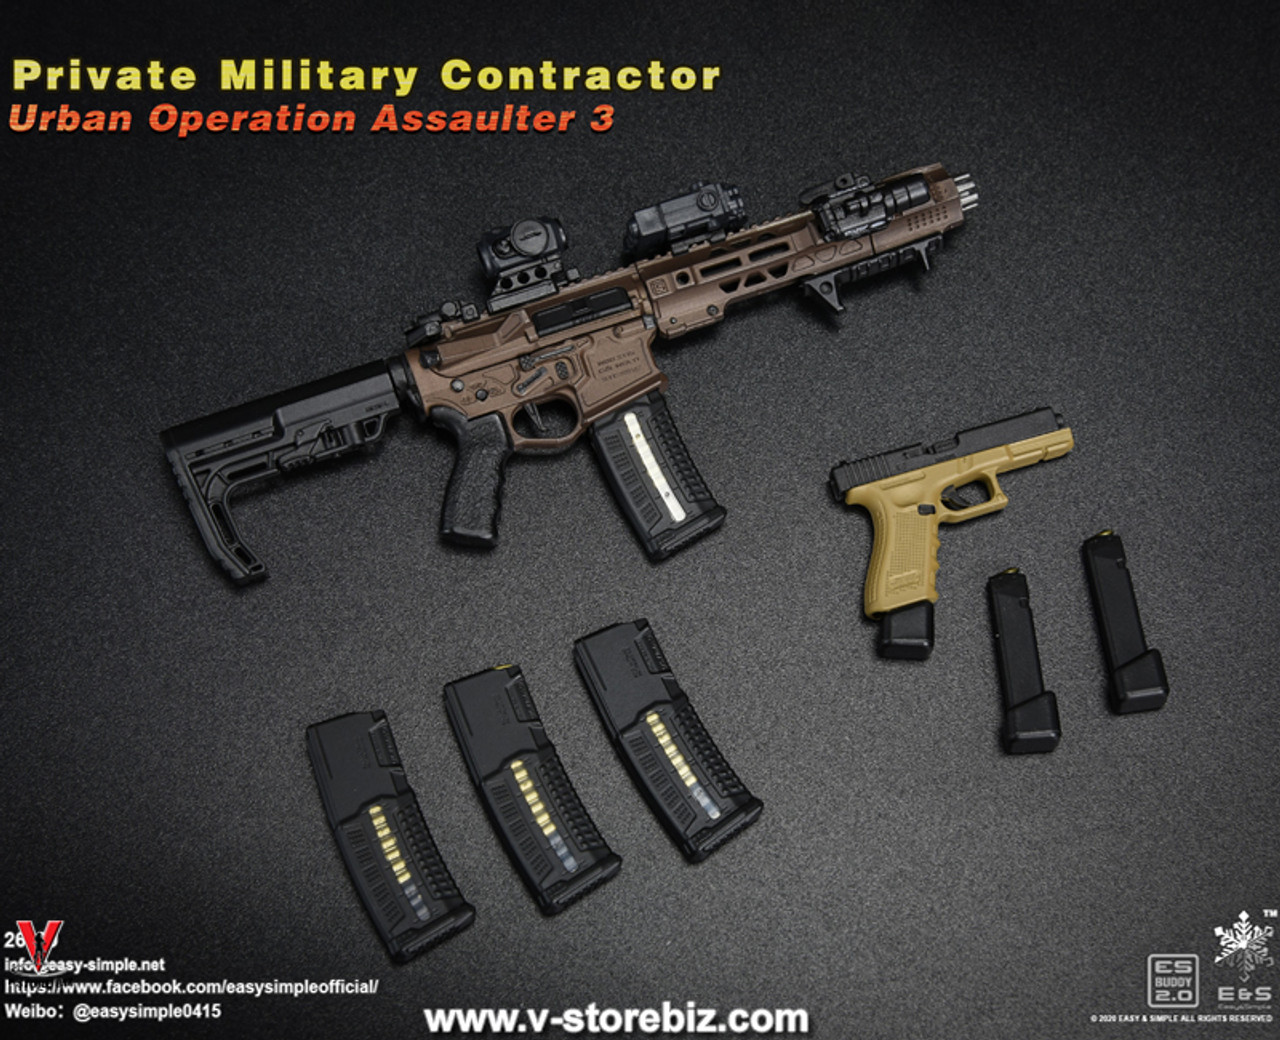 EASY/&SIMPLE ES26039 1//6 Private Military Contractor Urban Assaulter Pistol Model